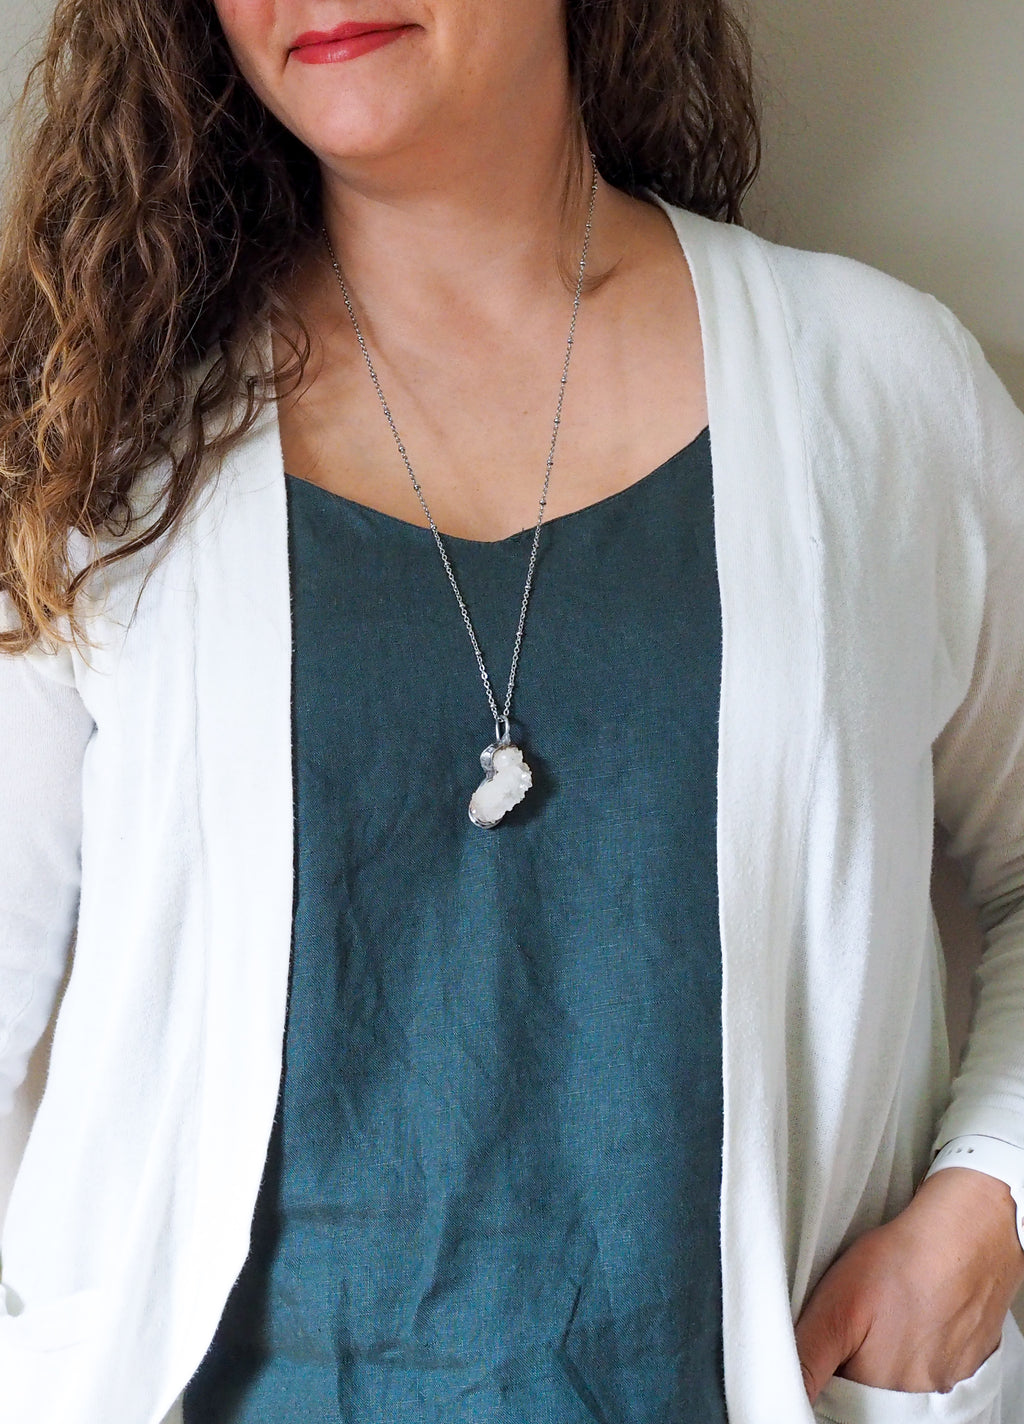 sparkly white healing crystal talisman necklace on woman in blue top